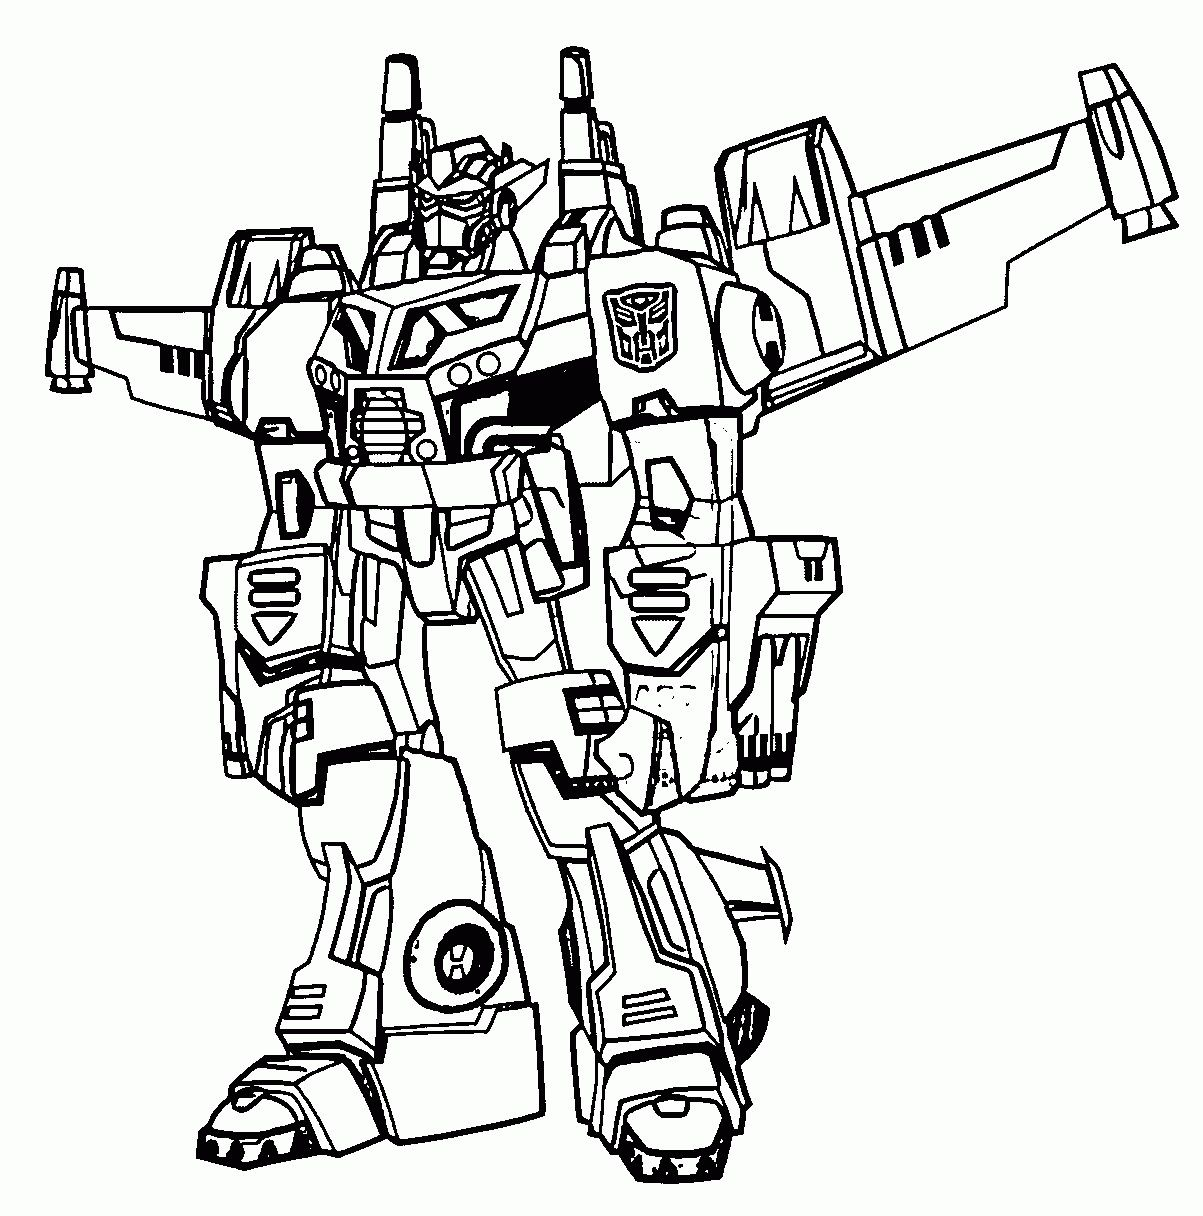 Optimus Prime Coloring Page Elegant Optimus Coloring Pages Coloring Home Of 50 Lovely Op Transformers Coloring Pages Bee Coloring Pages Coloring Pages For Boys